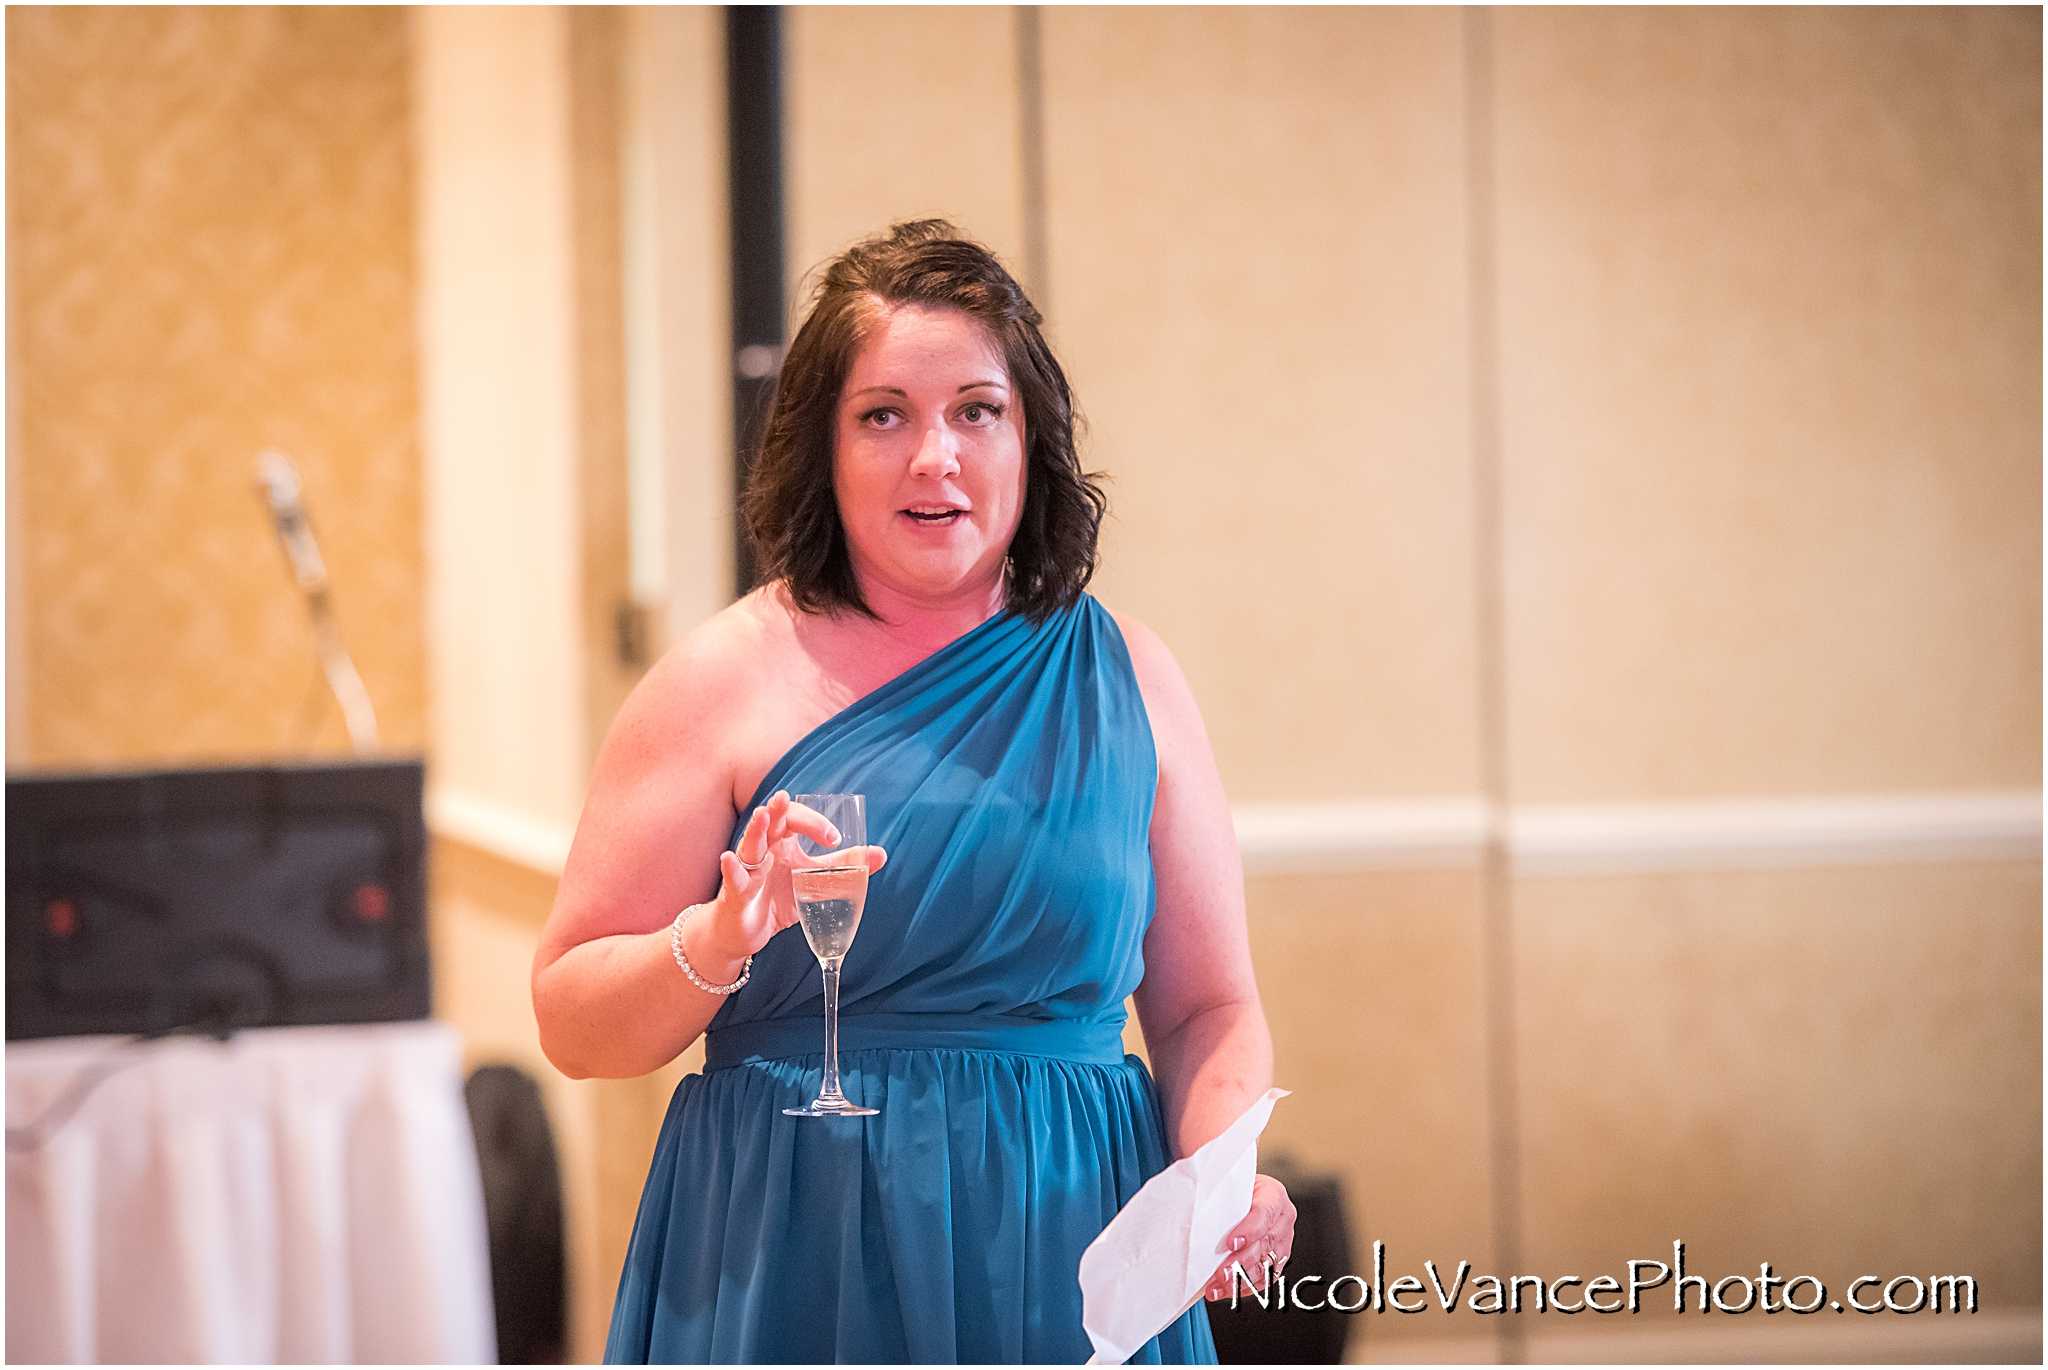 The maid of honor makes a toast at the reception at the Virginia Crossings.